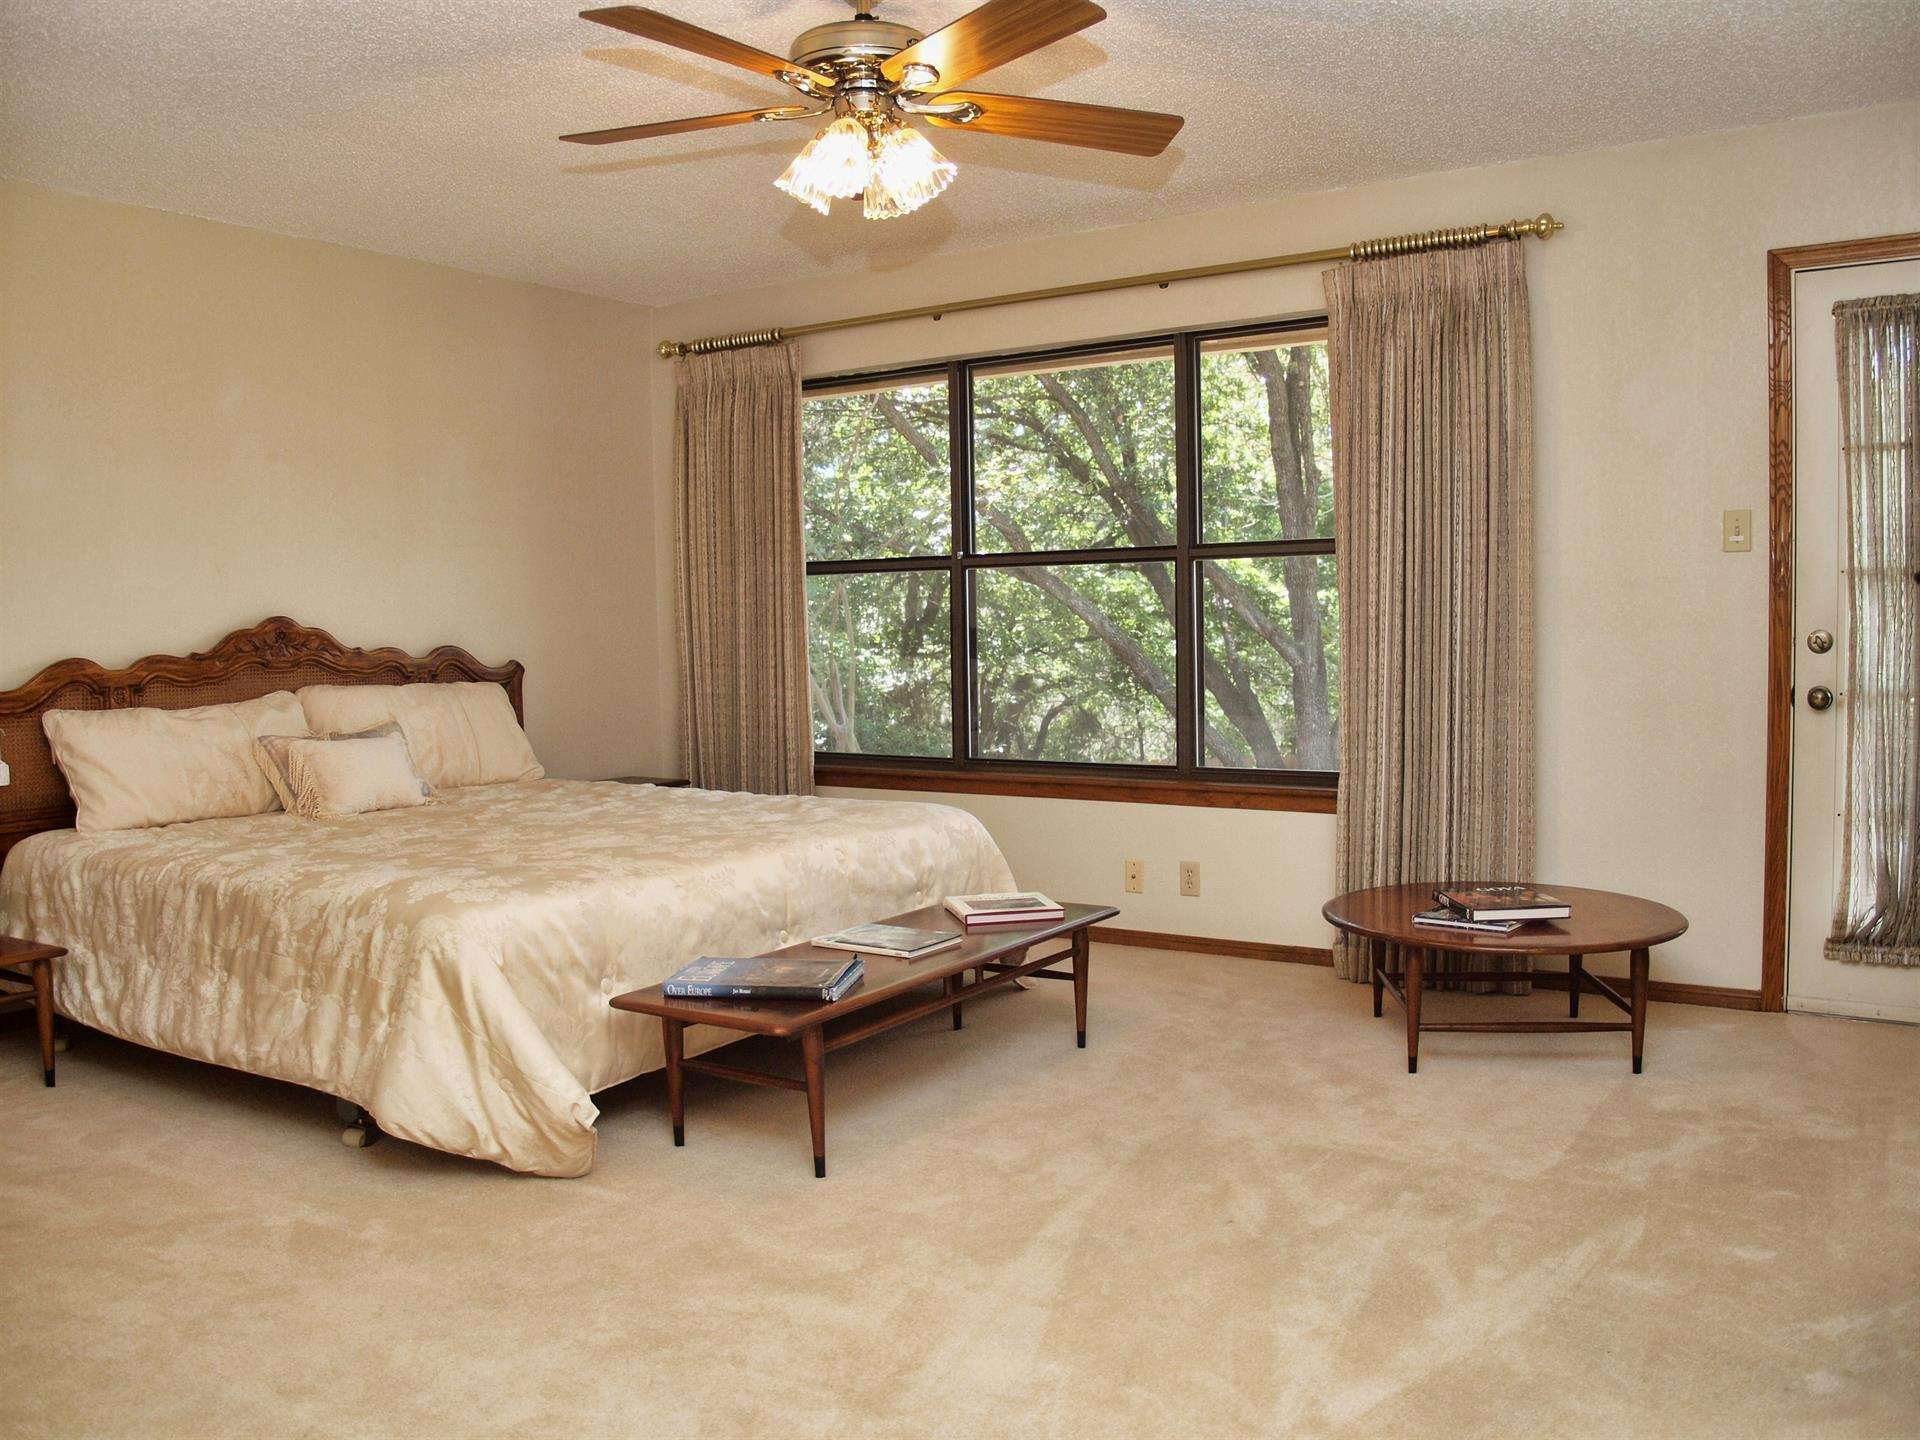 Additional photo for property listing at 5111 Saddleridge Cove 5111 Saddleridge Cove Austin, Texas 78759 Estados Unidos